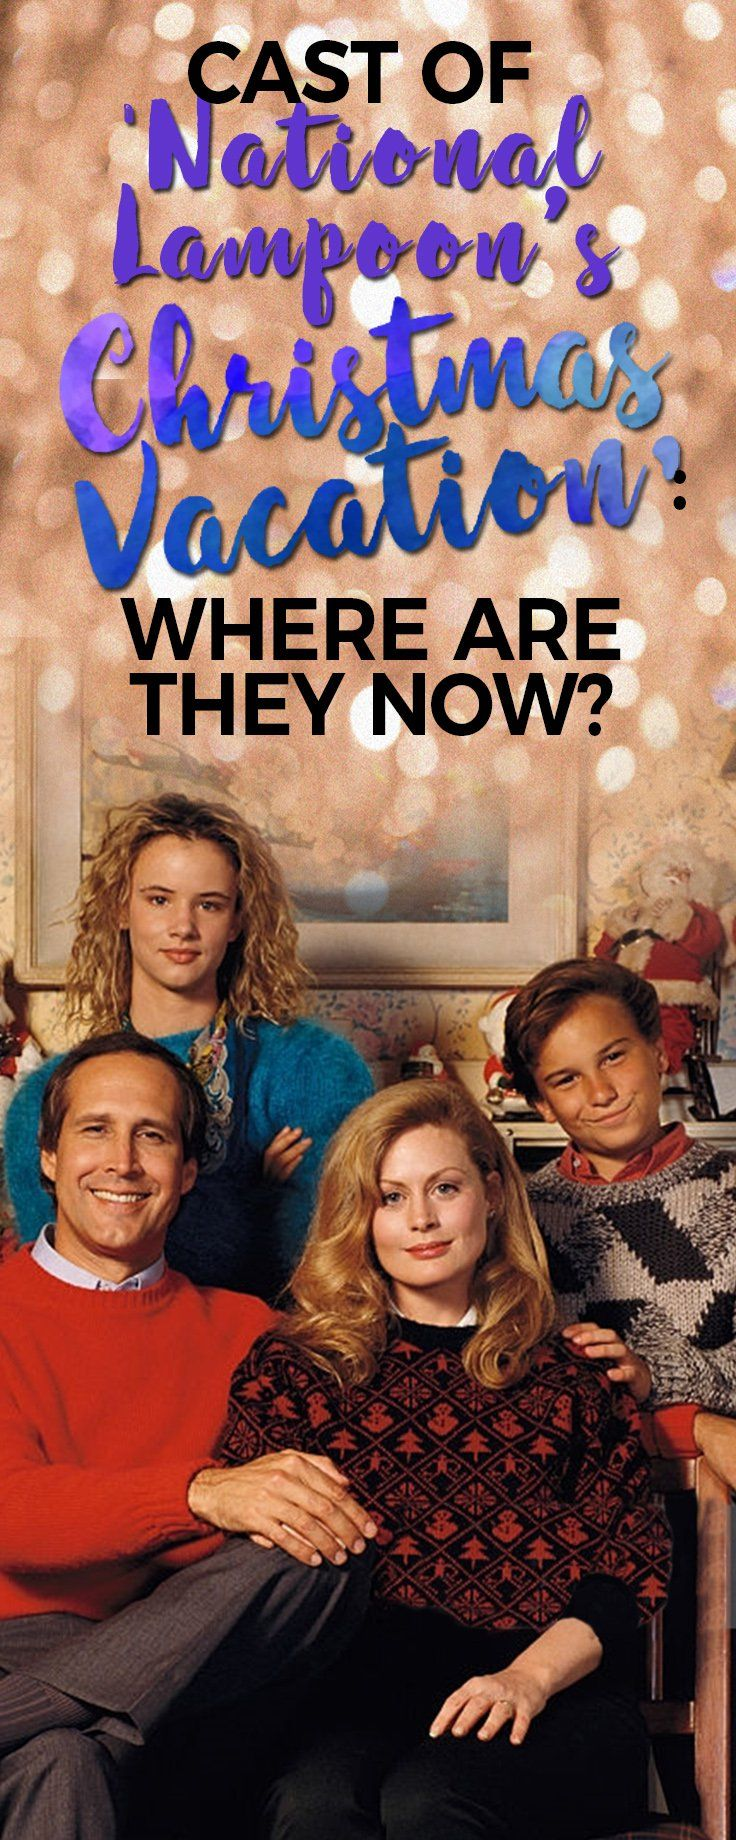 We may wonder where could these actors and actresses be? Like the old 'National Lampoons Christmas Vacation' cast. Take a look and find out.